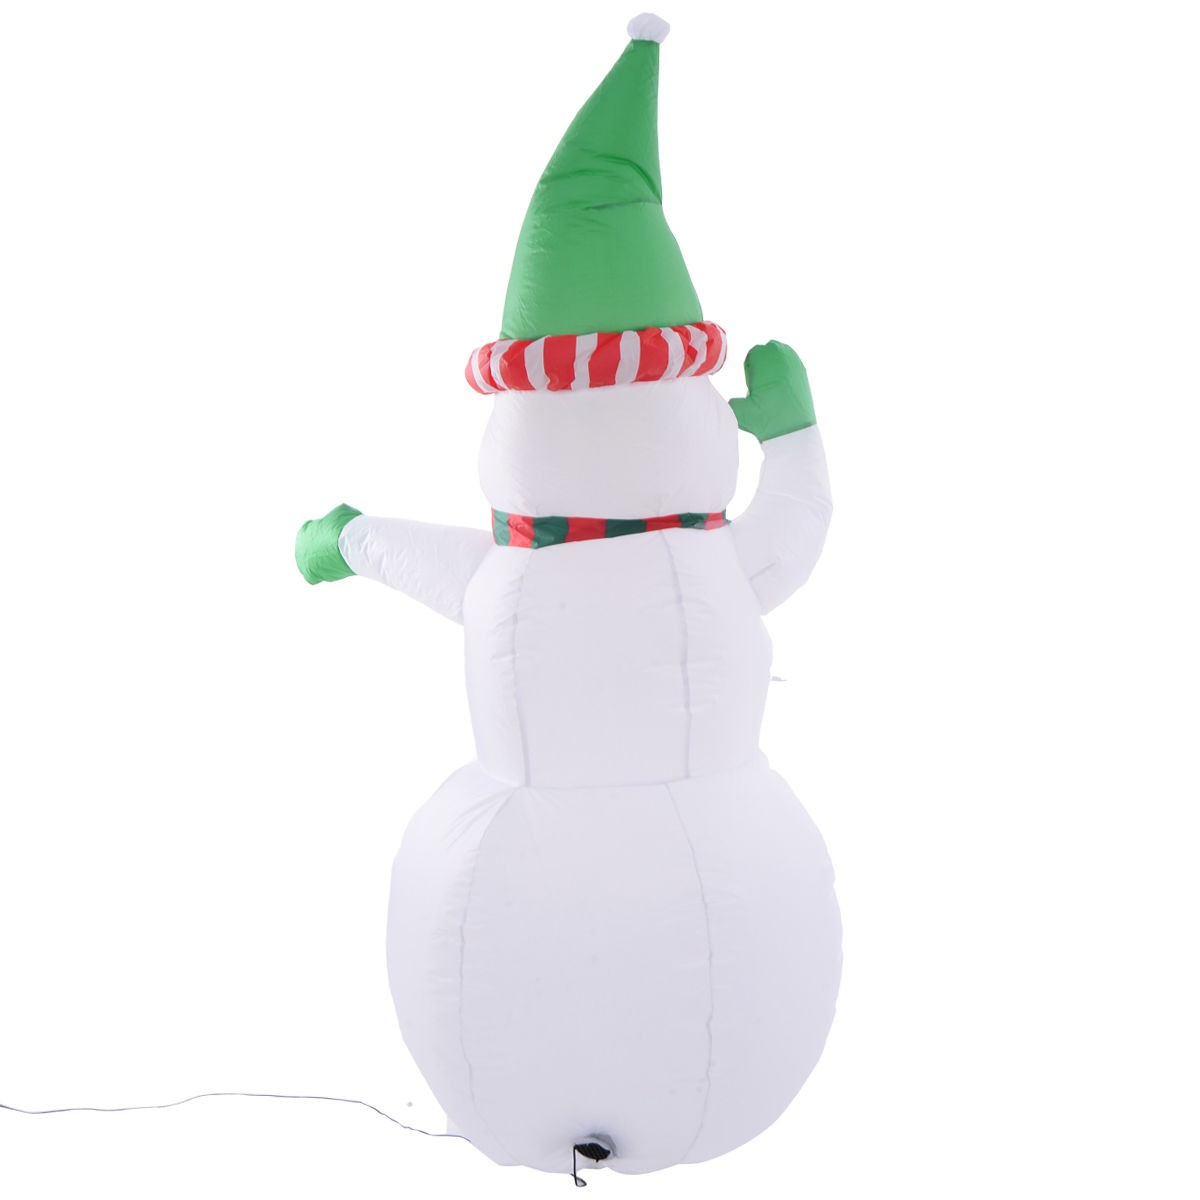 5ft airblown inflatable christmas decor snowman gemmy for Airblown nutcracker holiday lawn decoration